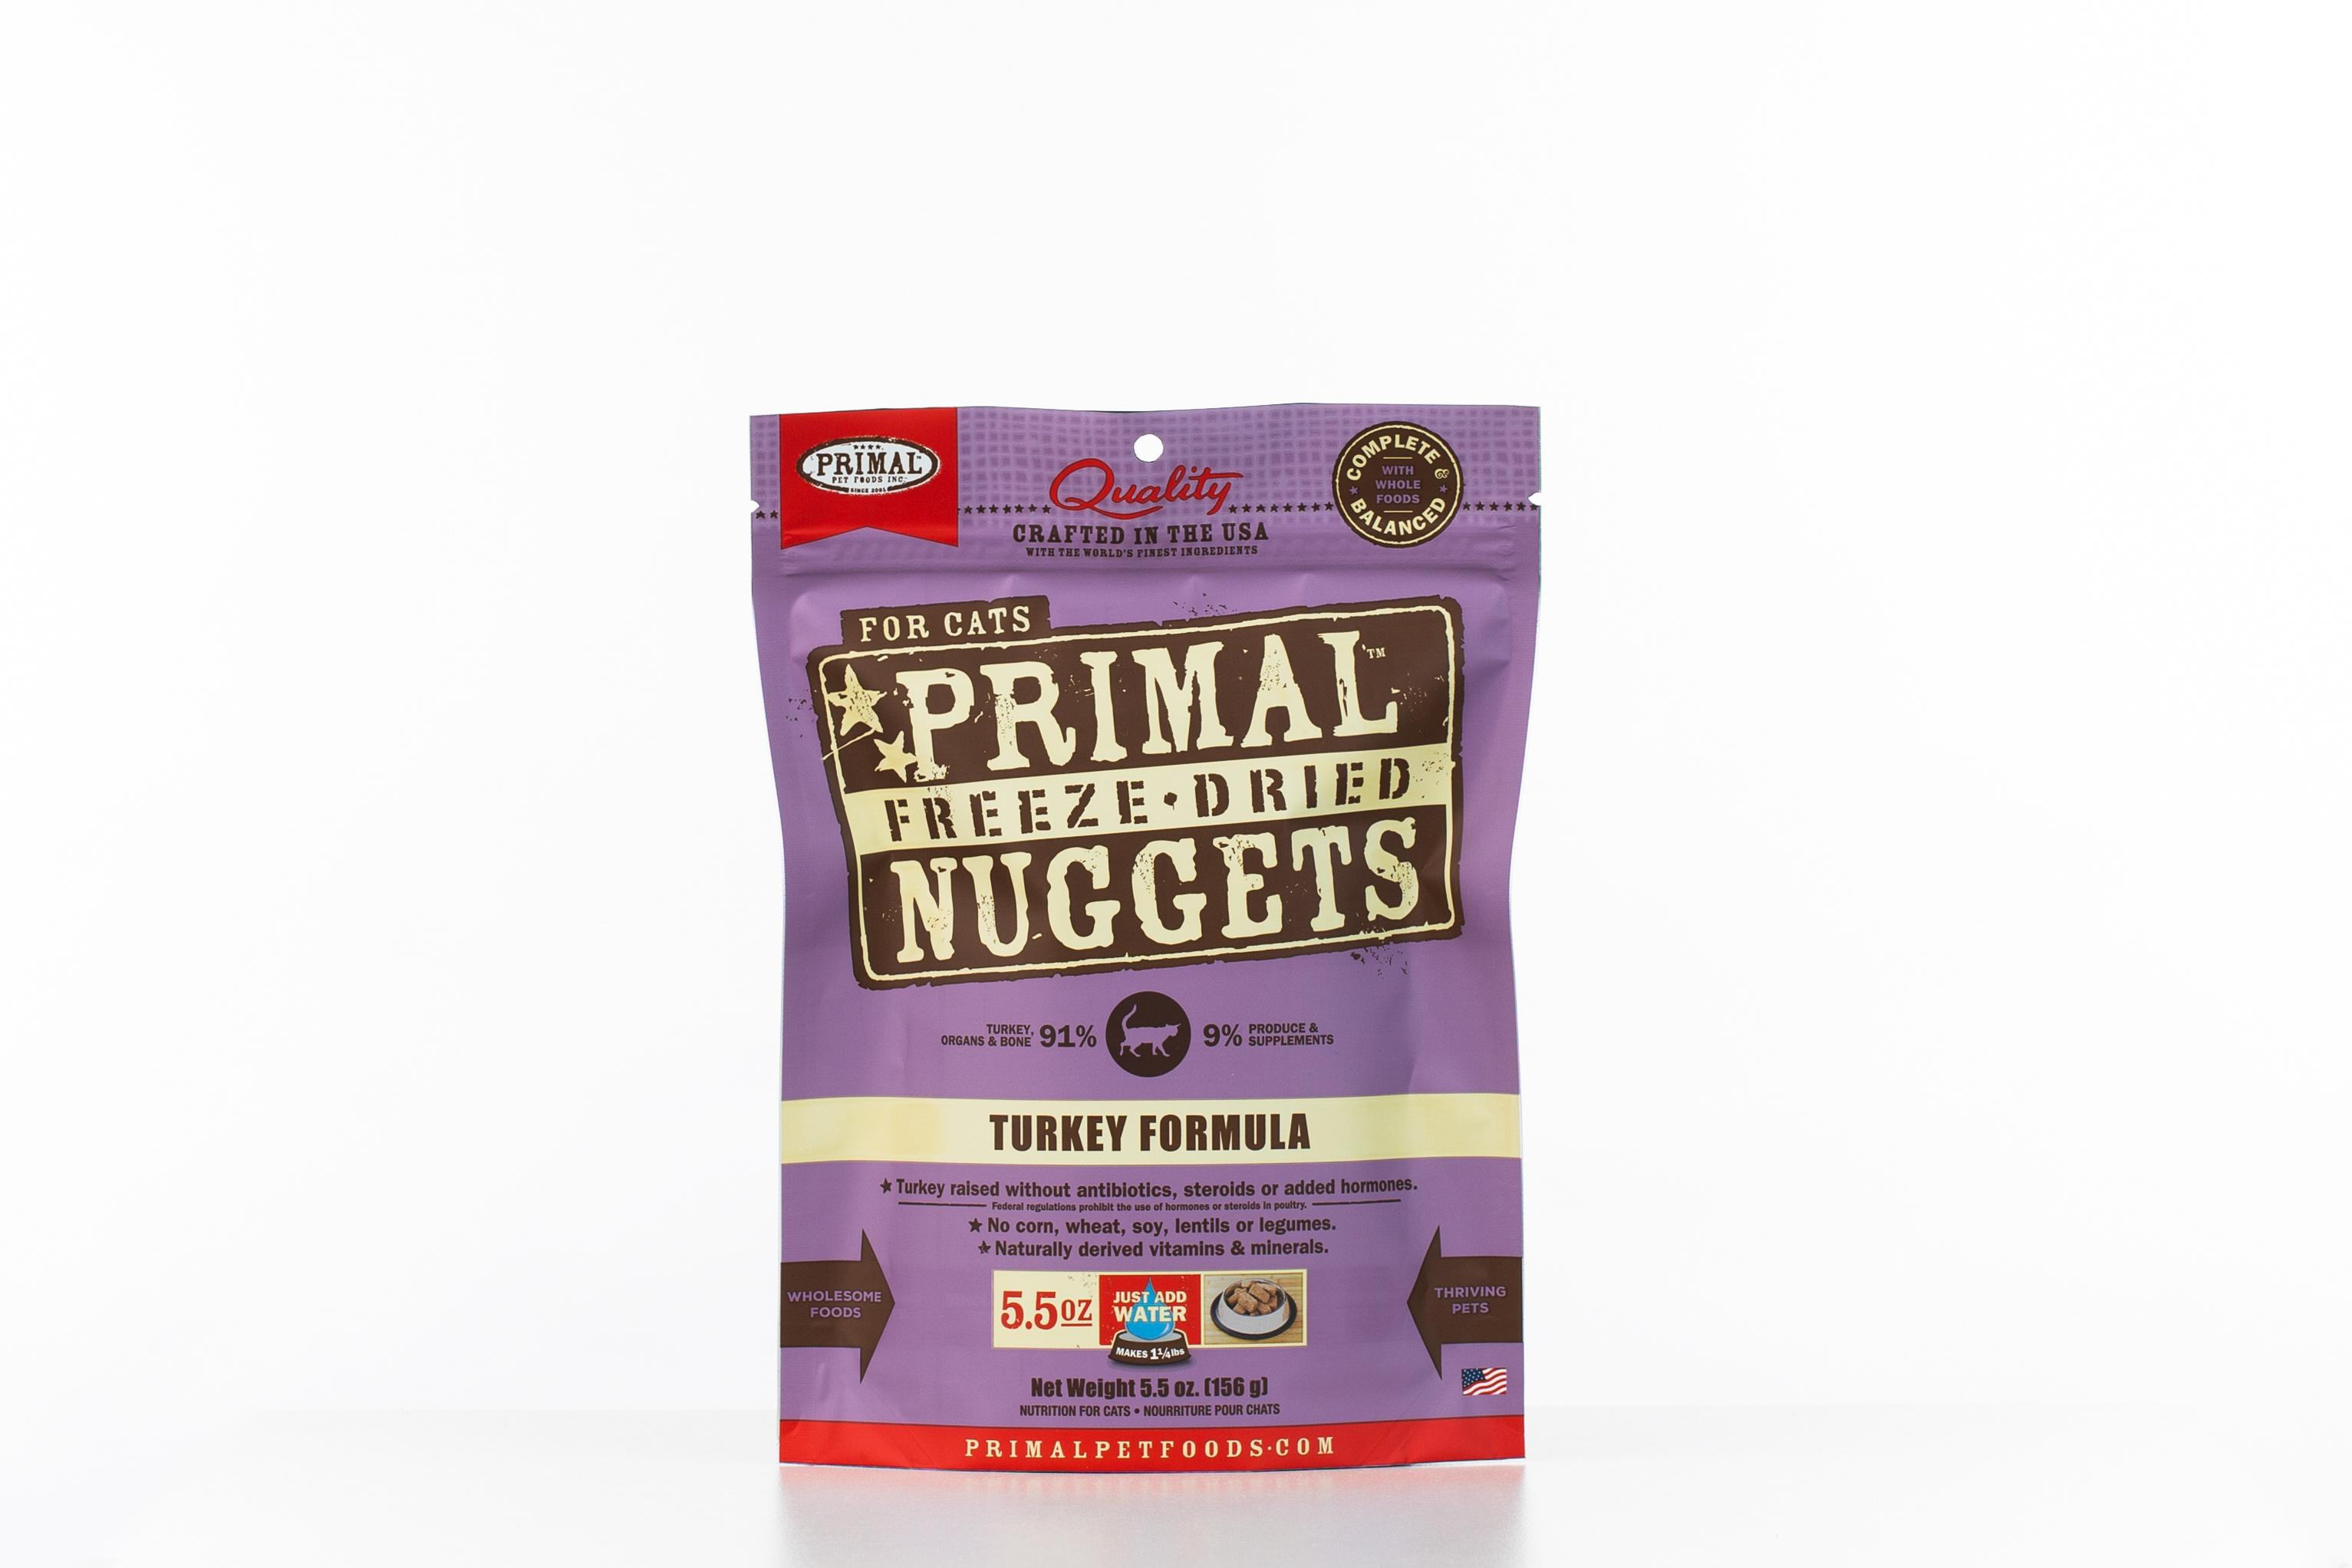 Primal Turkey Formula Nuggets Grain-Free Raw Freeze-Dried Cat Food Image